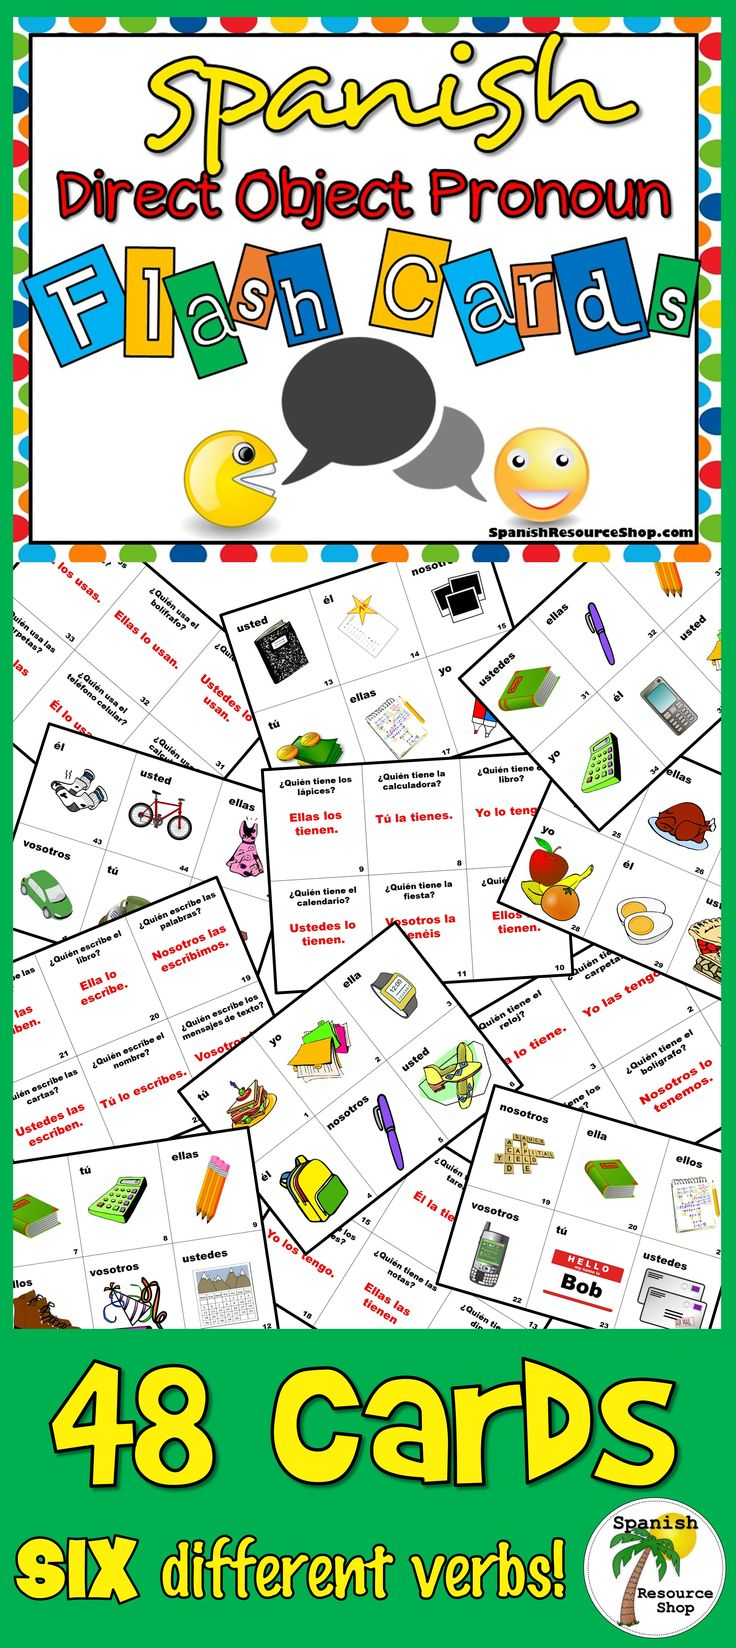 Flashcards to help student master the Spanish direct object pronouns!